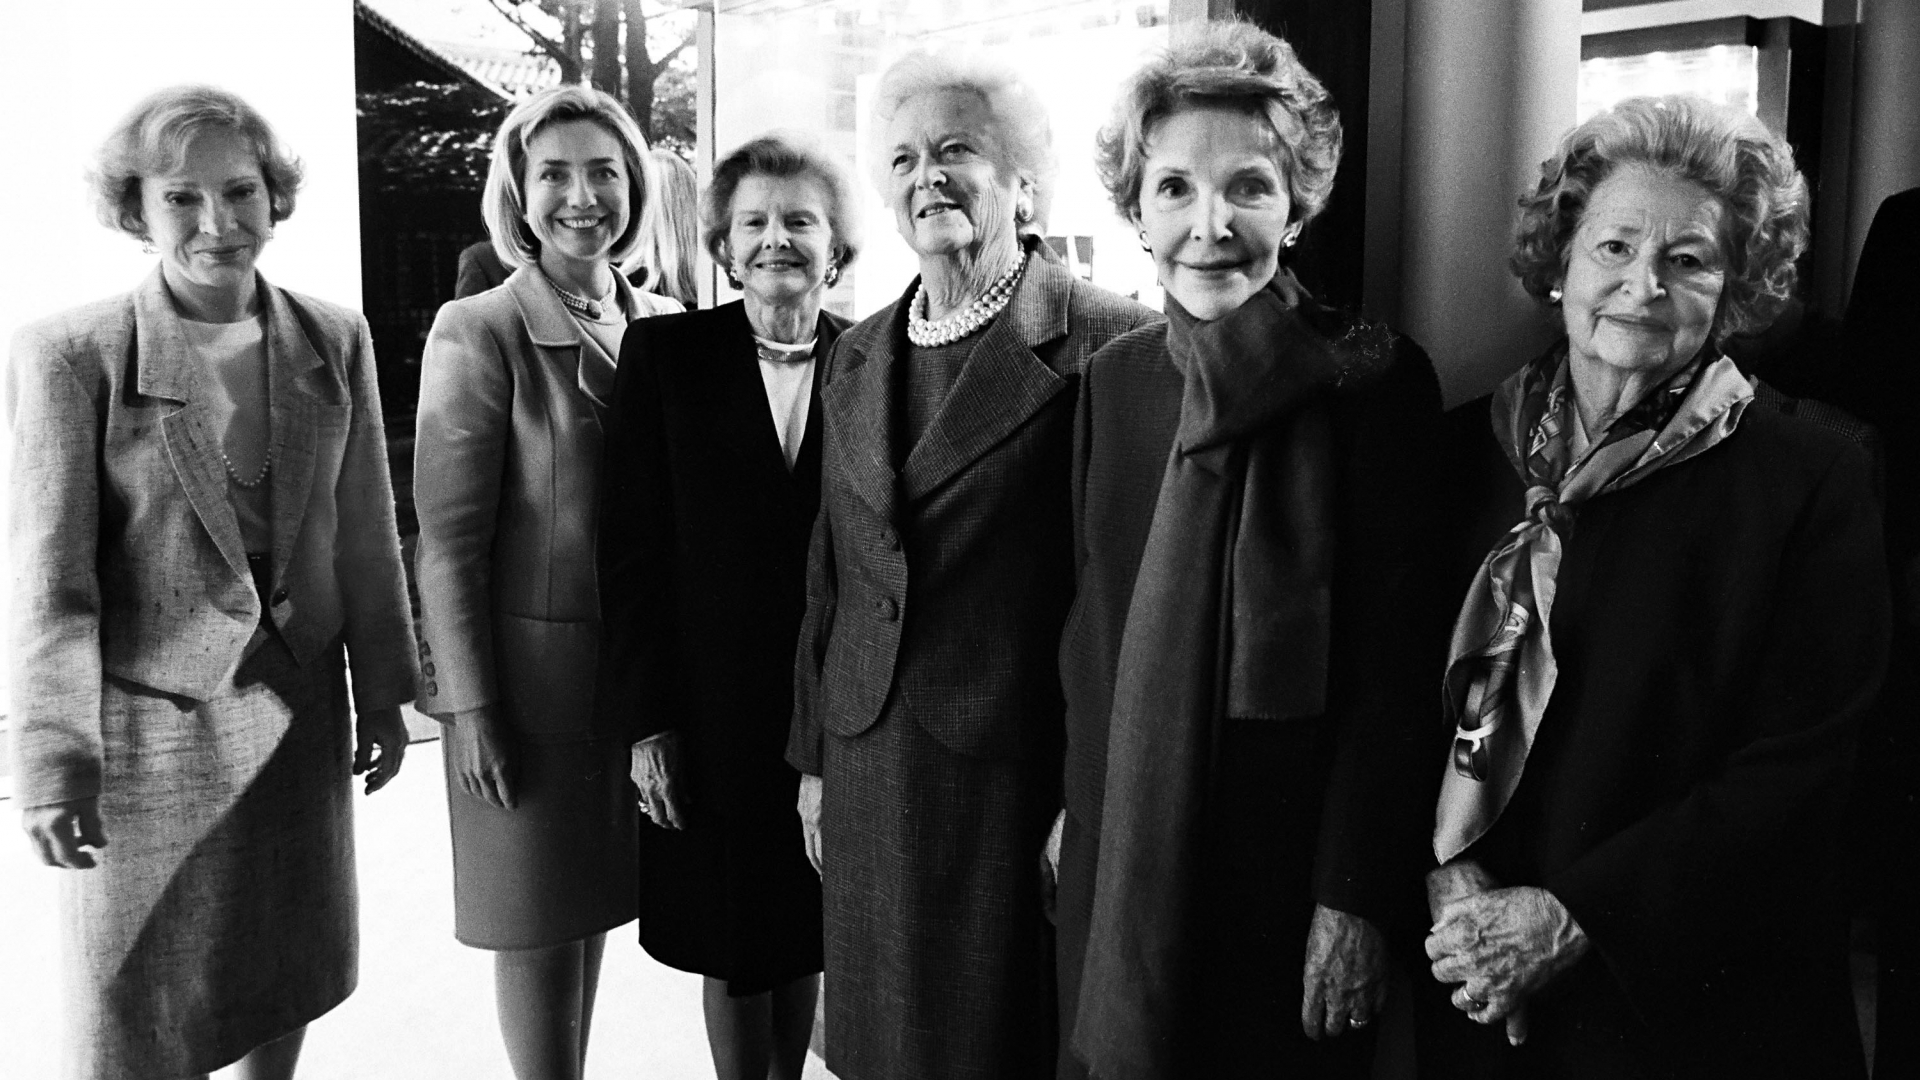 Former First Ladies Rosalynn Carter, Hillary Rodham Clinton, Betty Ford, Barbara Bush, Nancy Reagan, and Lady Bird Johson at the dedication of the George H.W. Bush Presidential Library on November 6, 1997 in College Station, Texas. (Credit: David Hume Kennerly/Getty Images)